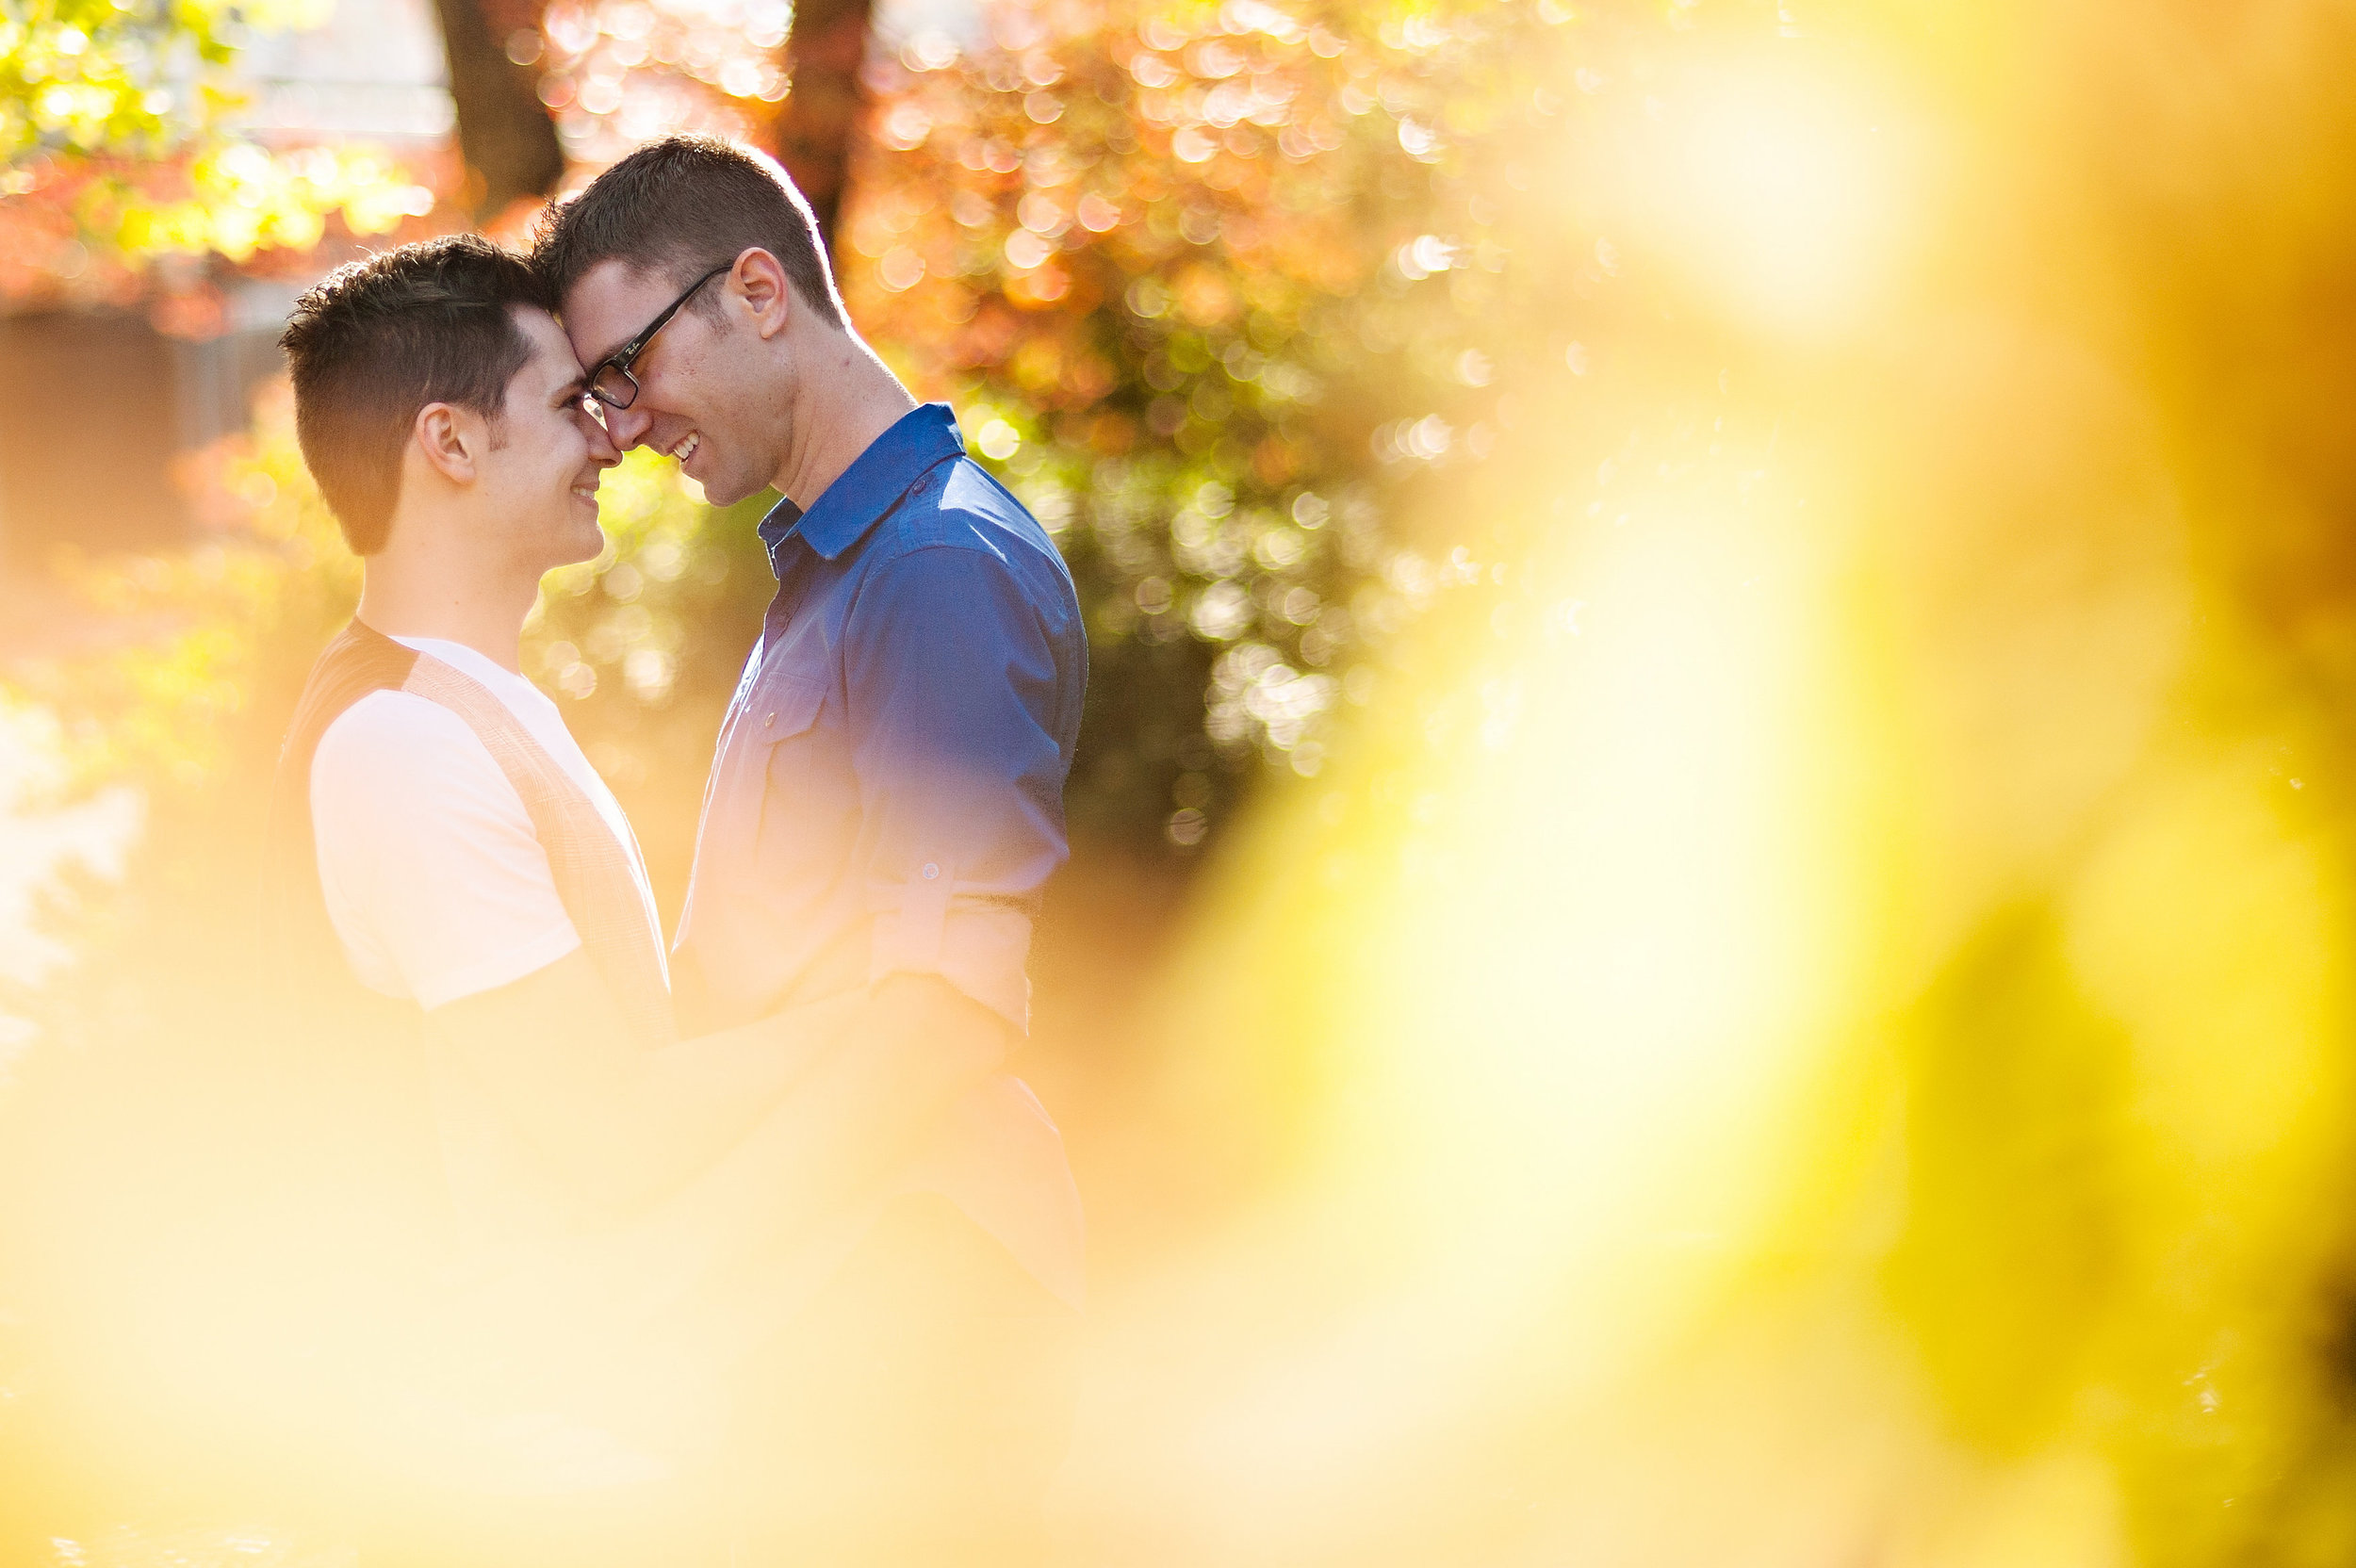 josh-parker-016-sacramento-same-sex-engagement-wedding-photographer-katherine-nicole-photography.JPG